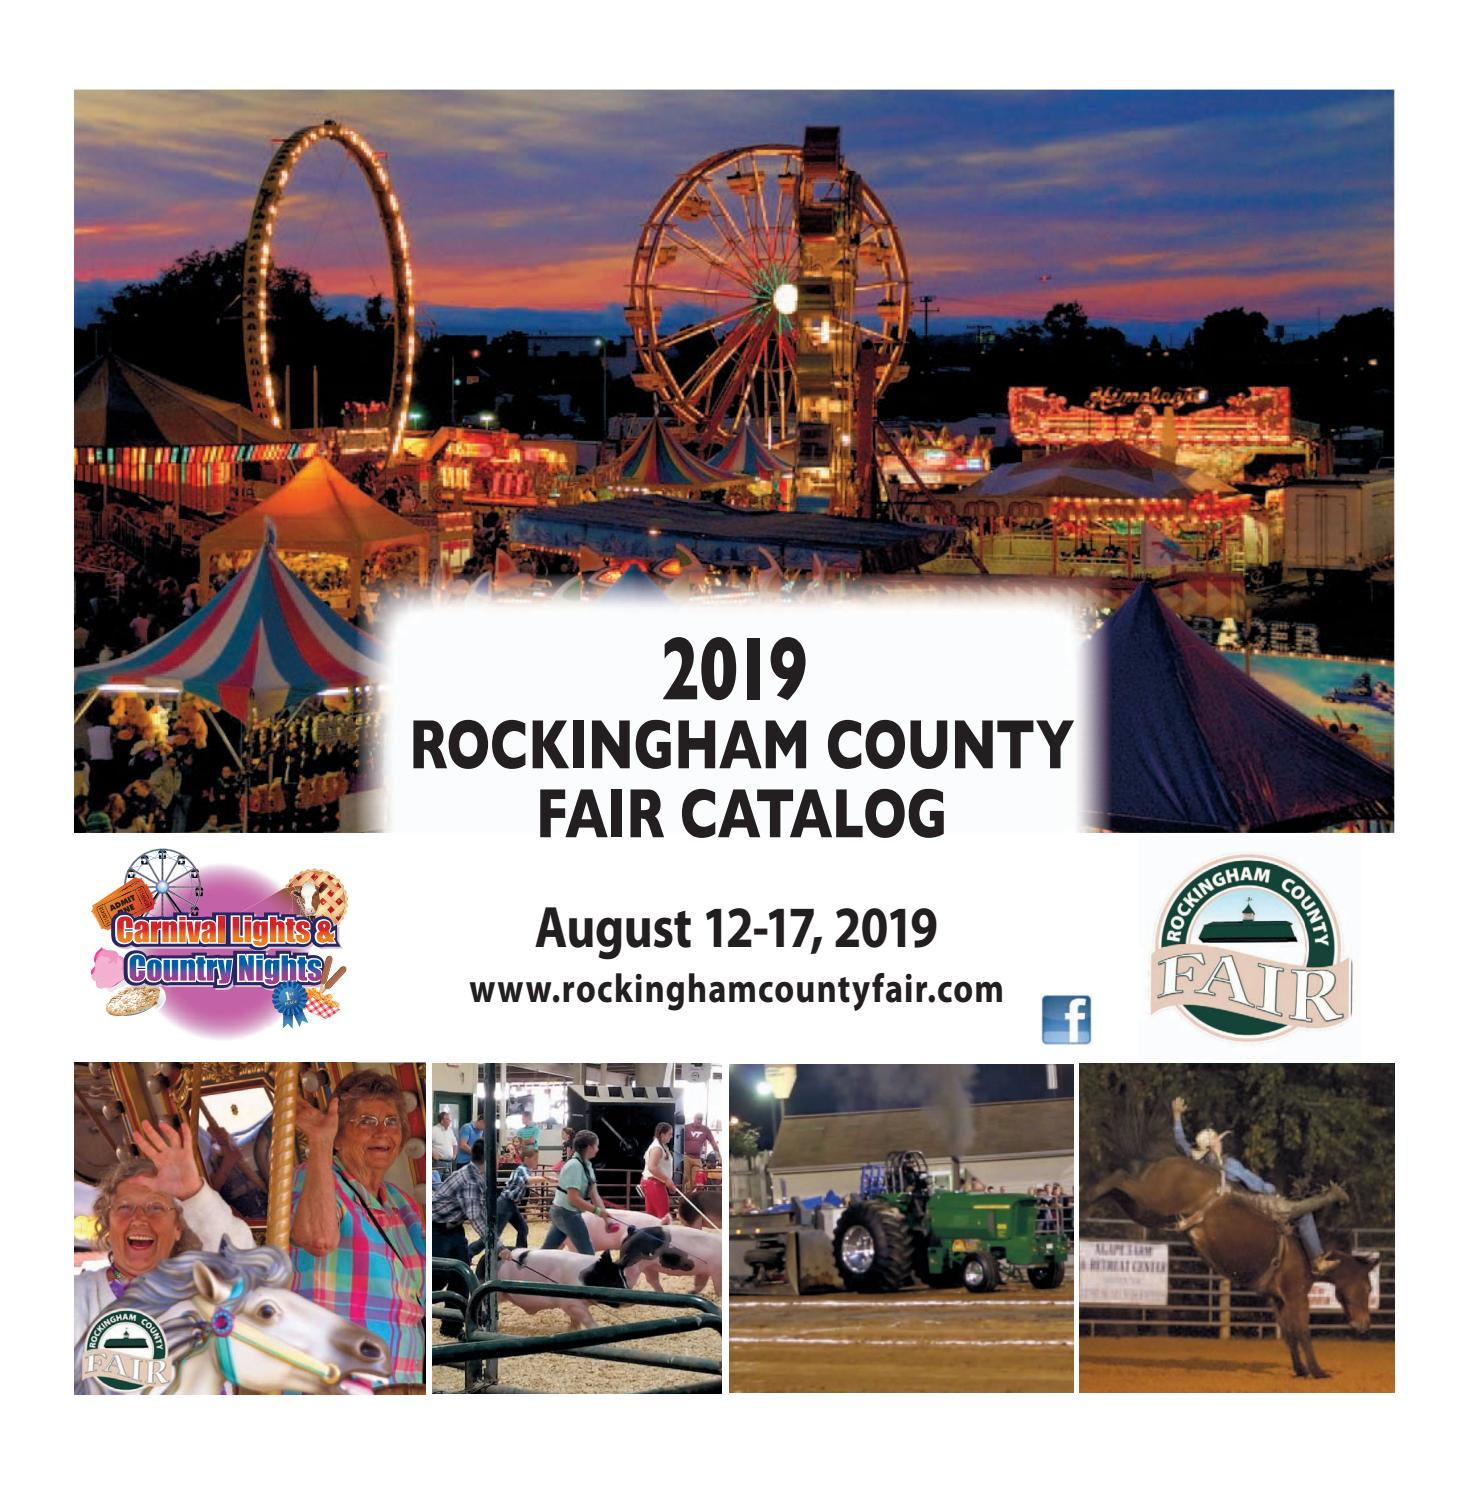 Rockingham County Fair Catalog - June 2019 by Daily News